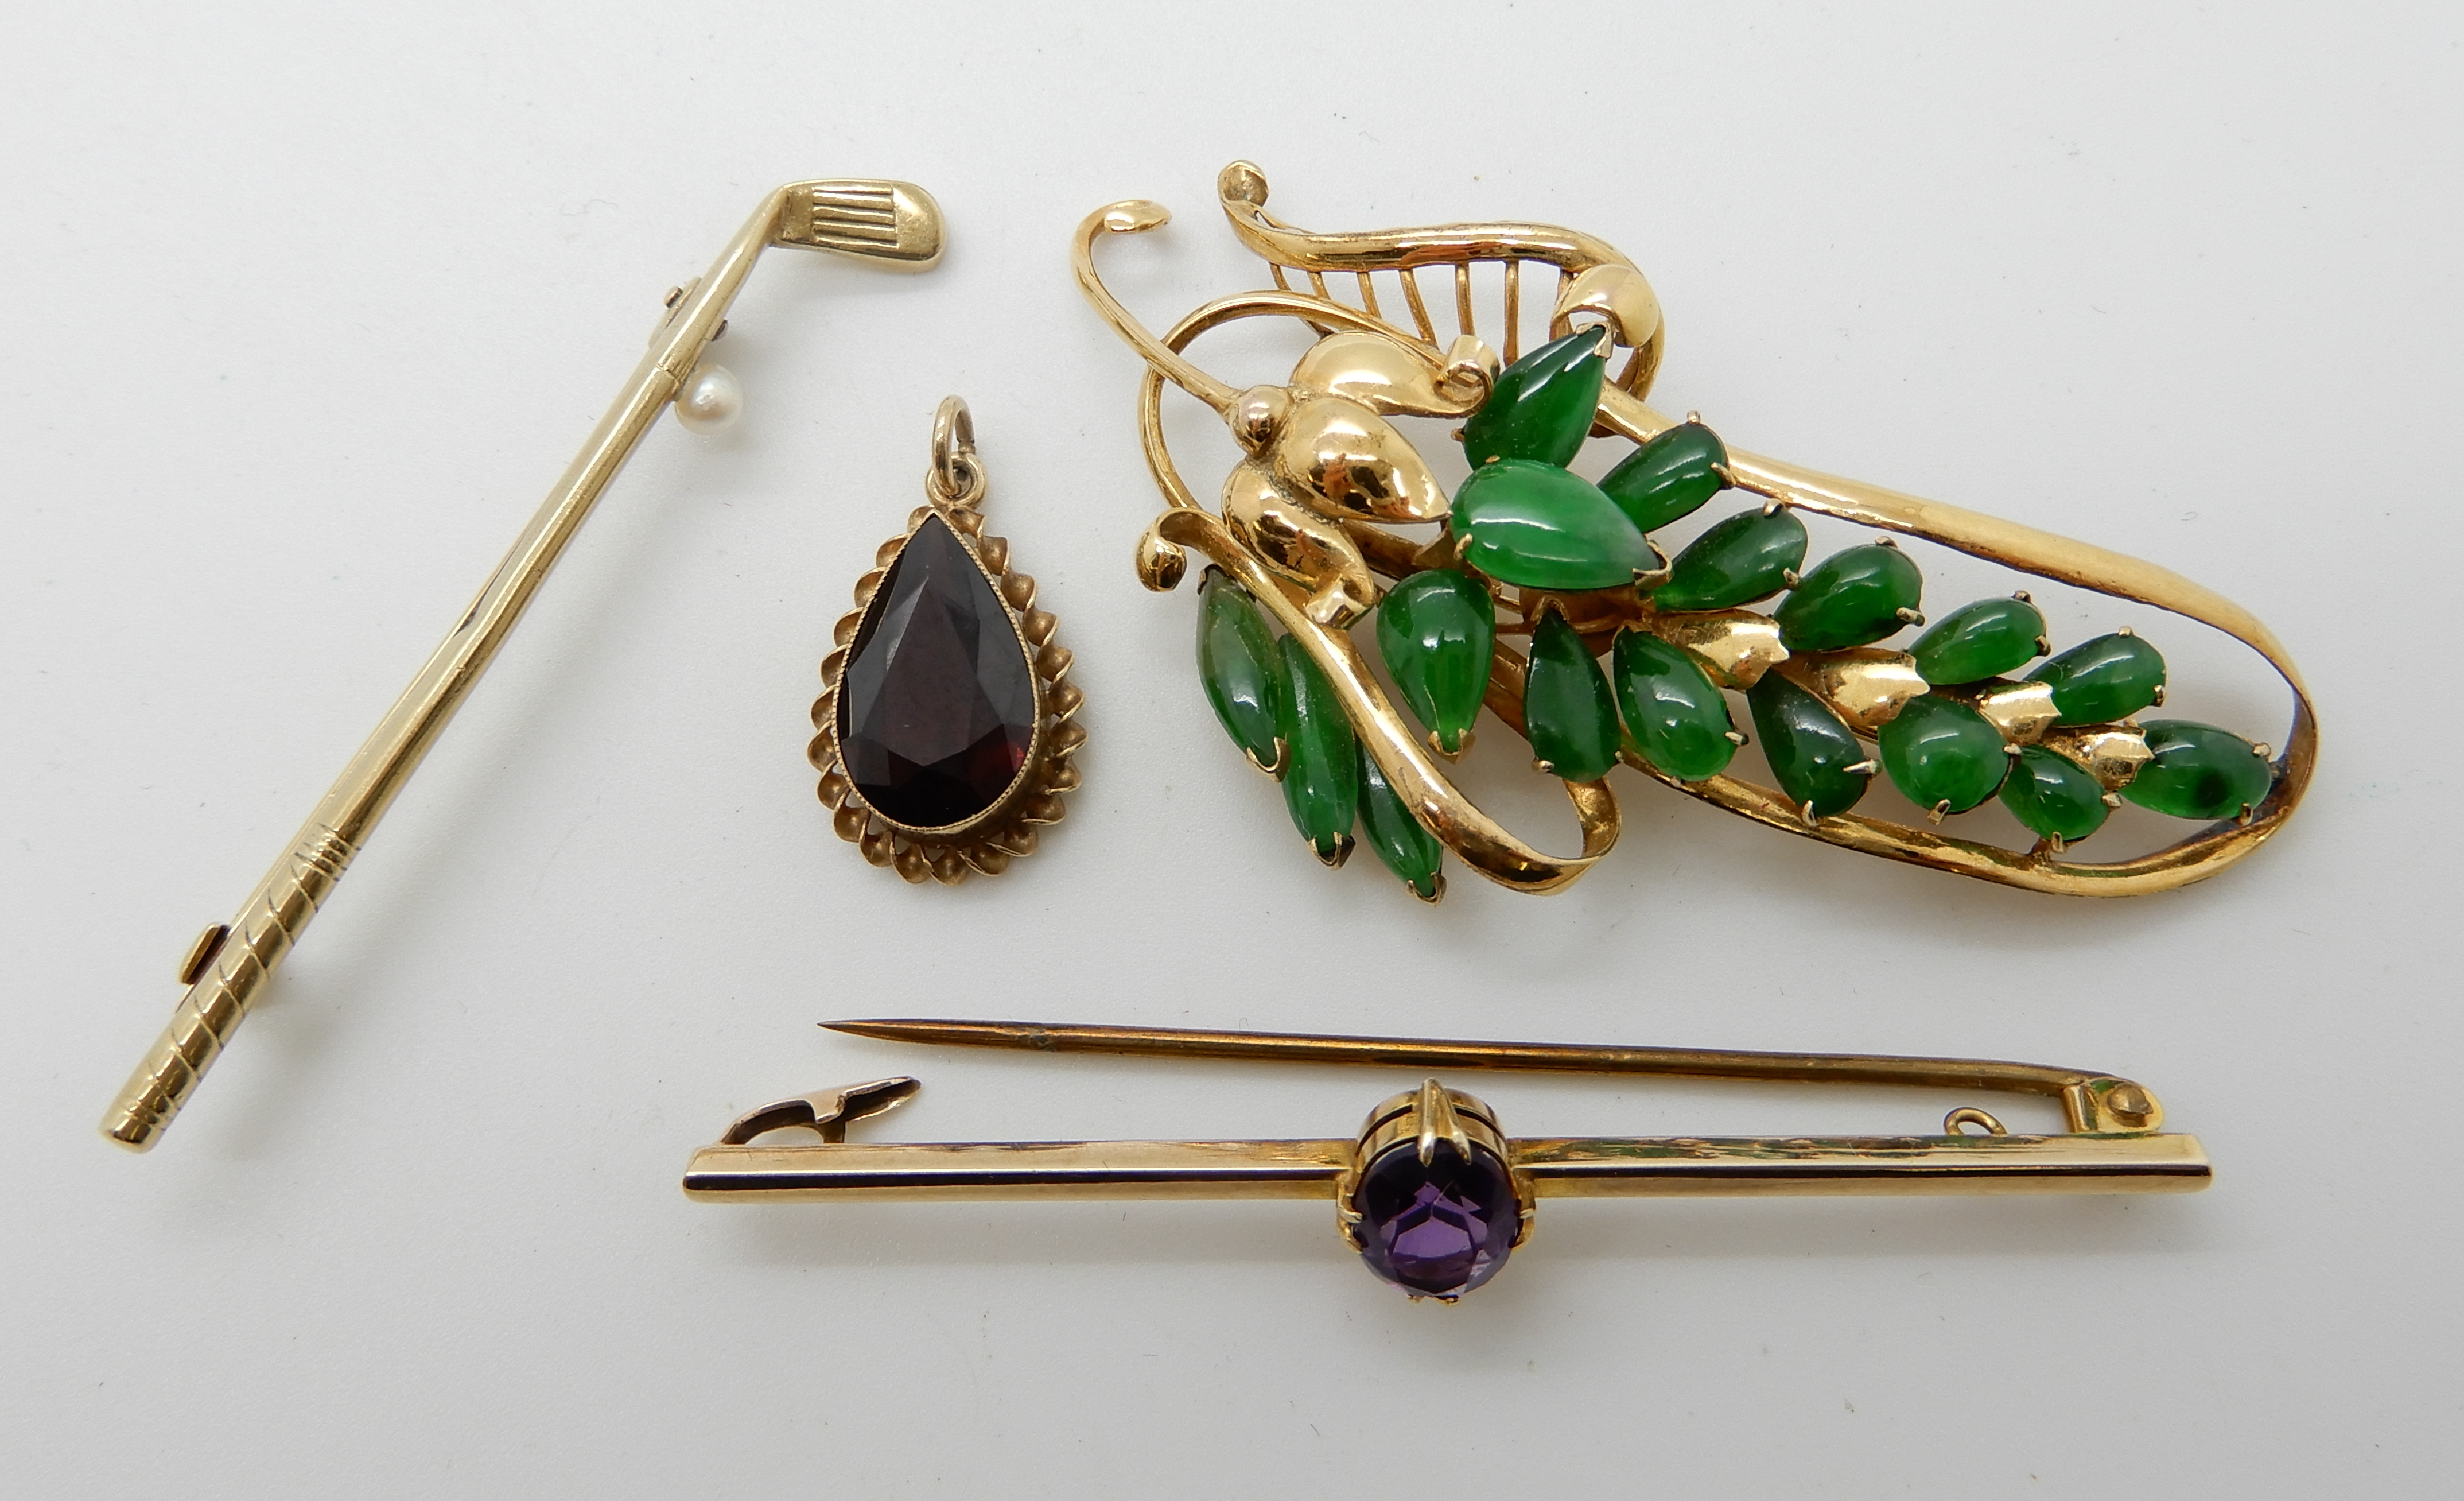 Lot 38 - A 14ct gold green hardstone set brooch length 5.6cm, weight 5.5gms, a 15ct gold and pearl gold